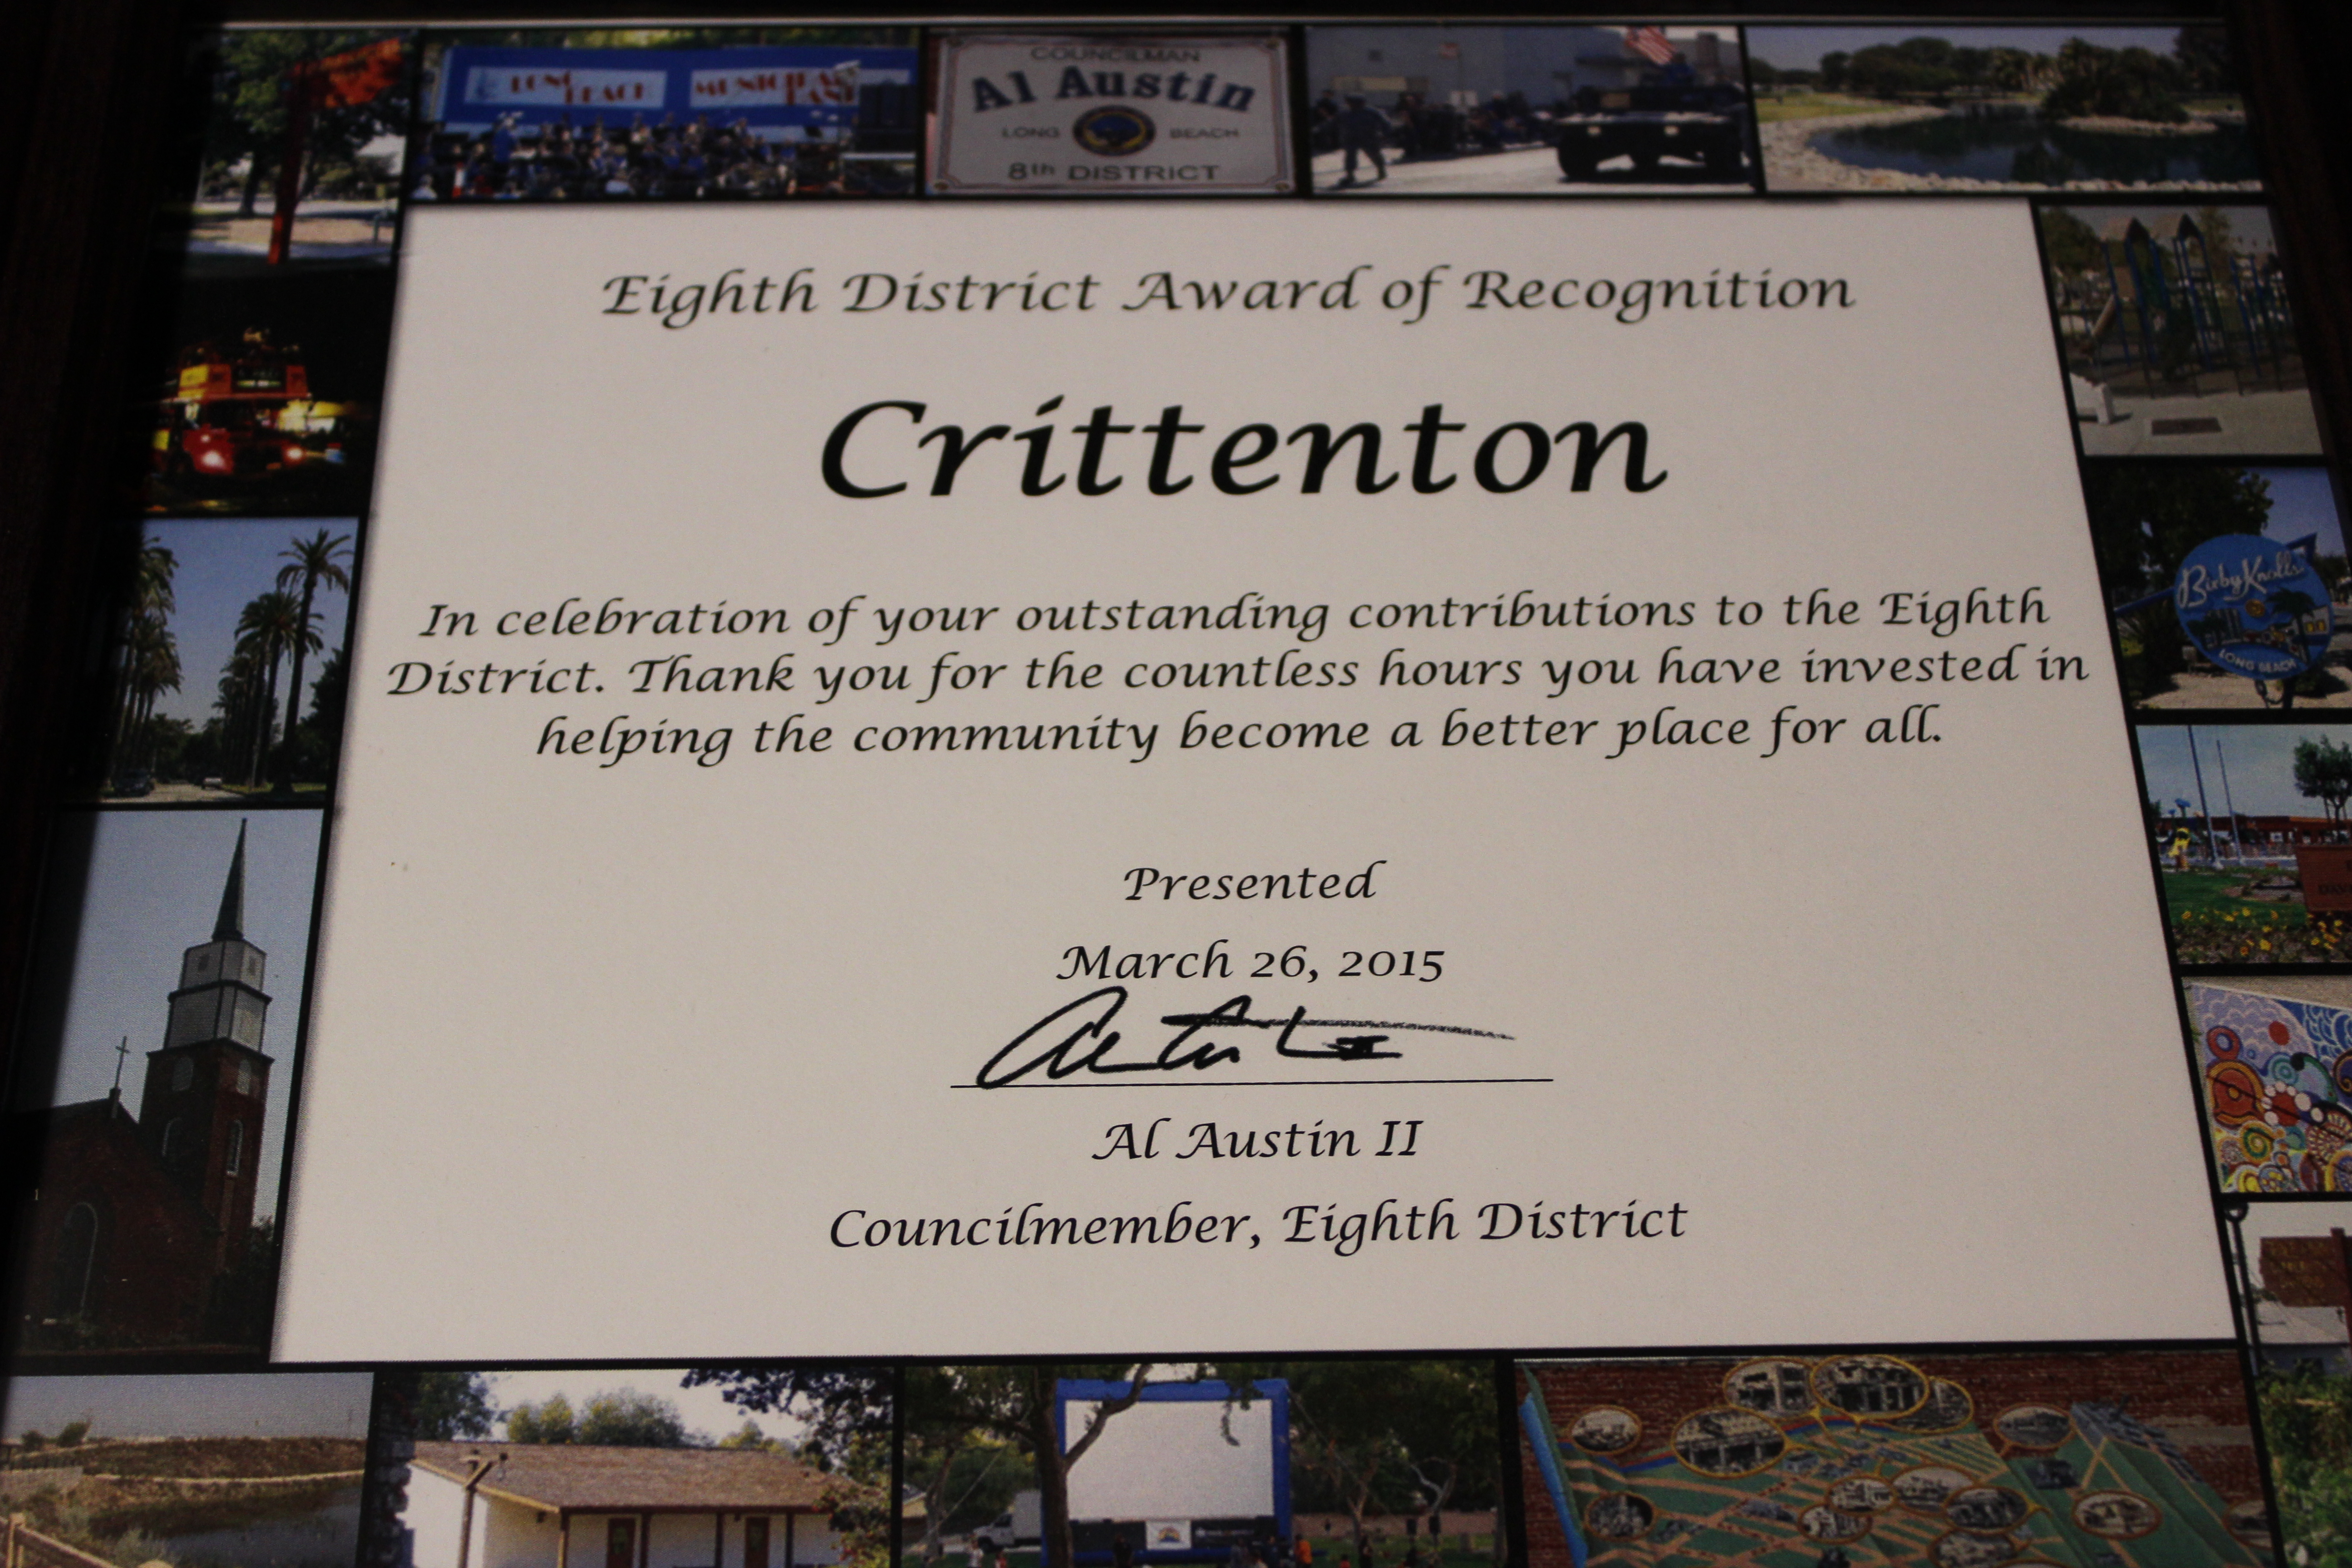 Crittenton's Celebrate the Eighth Award